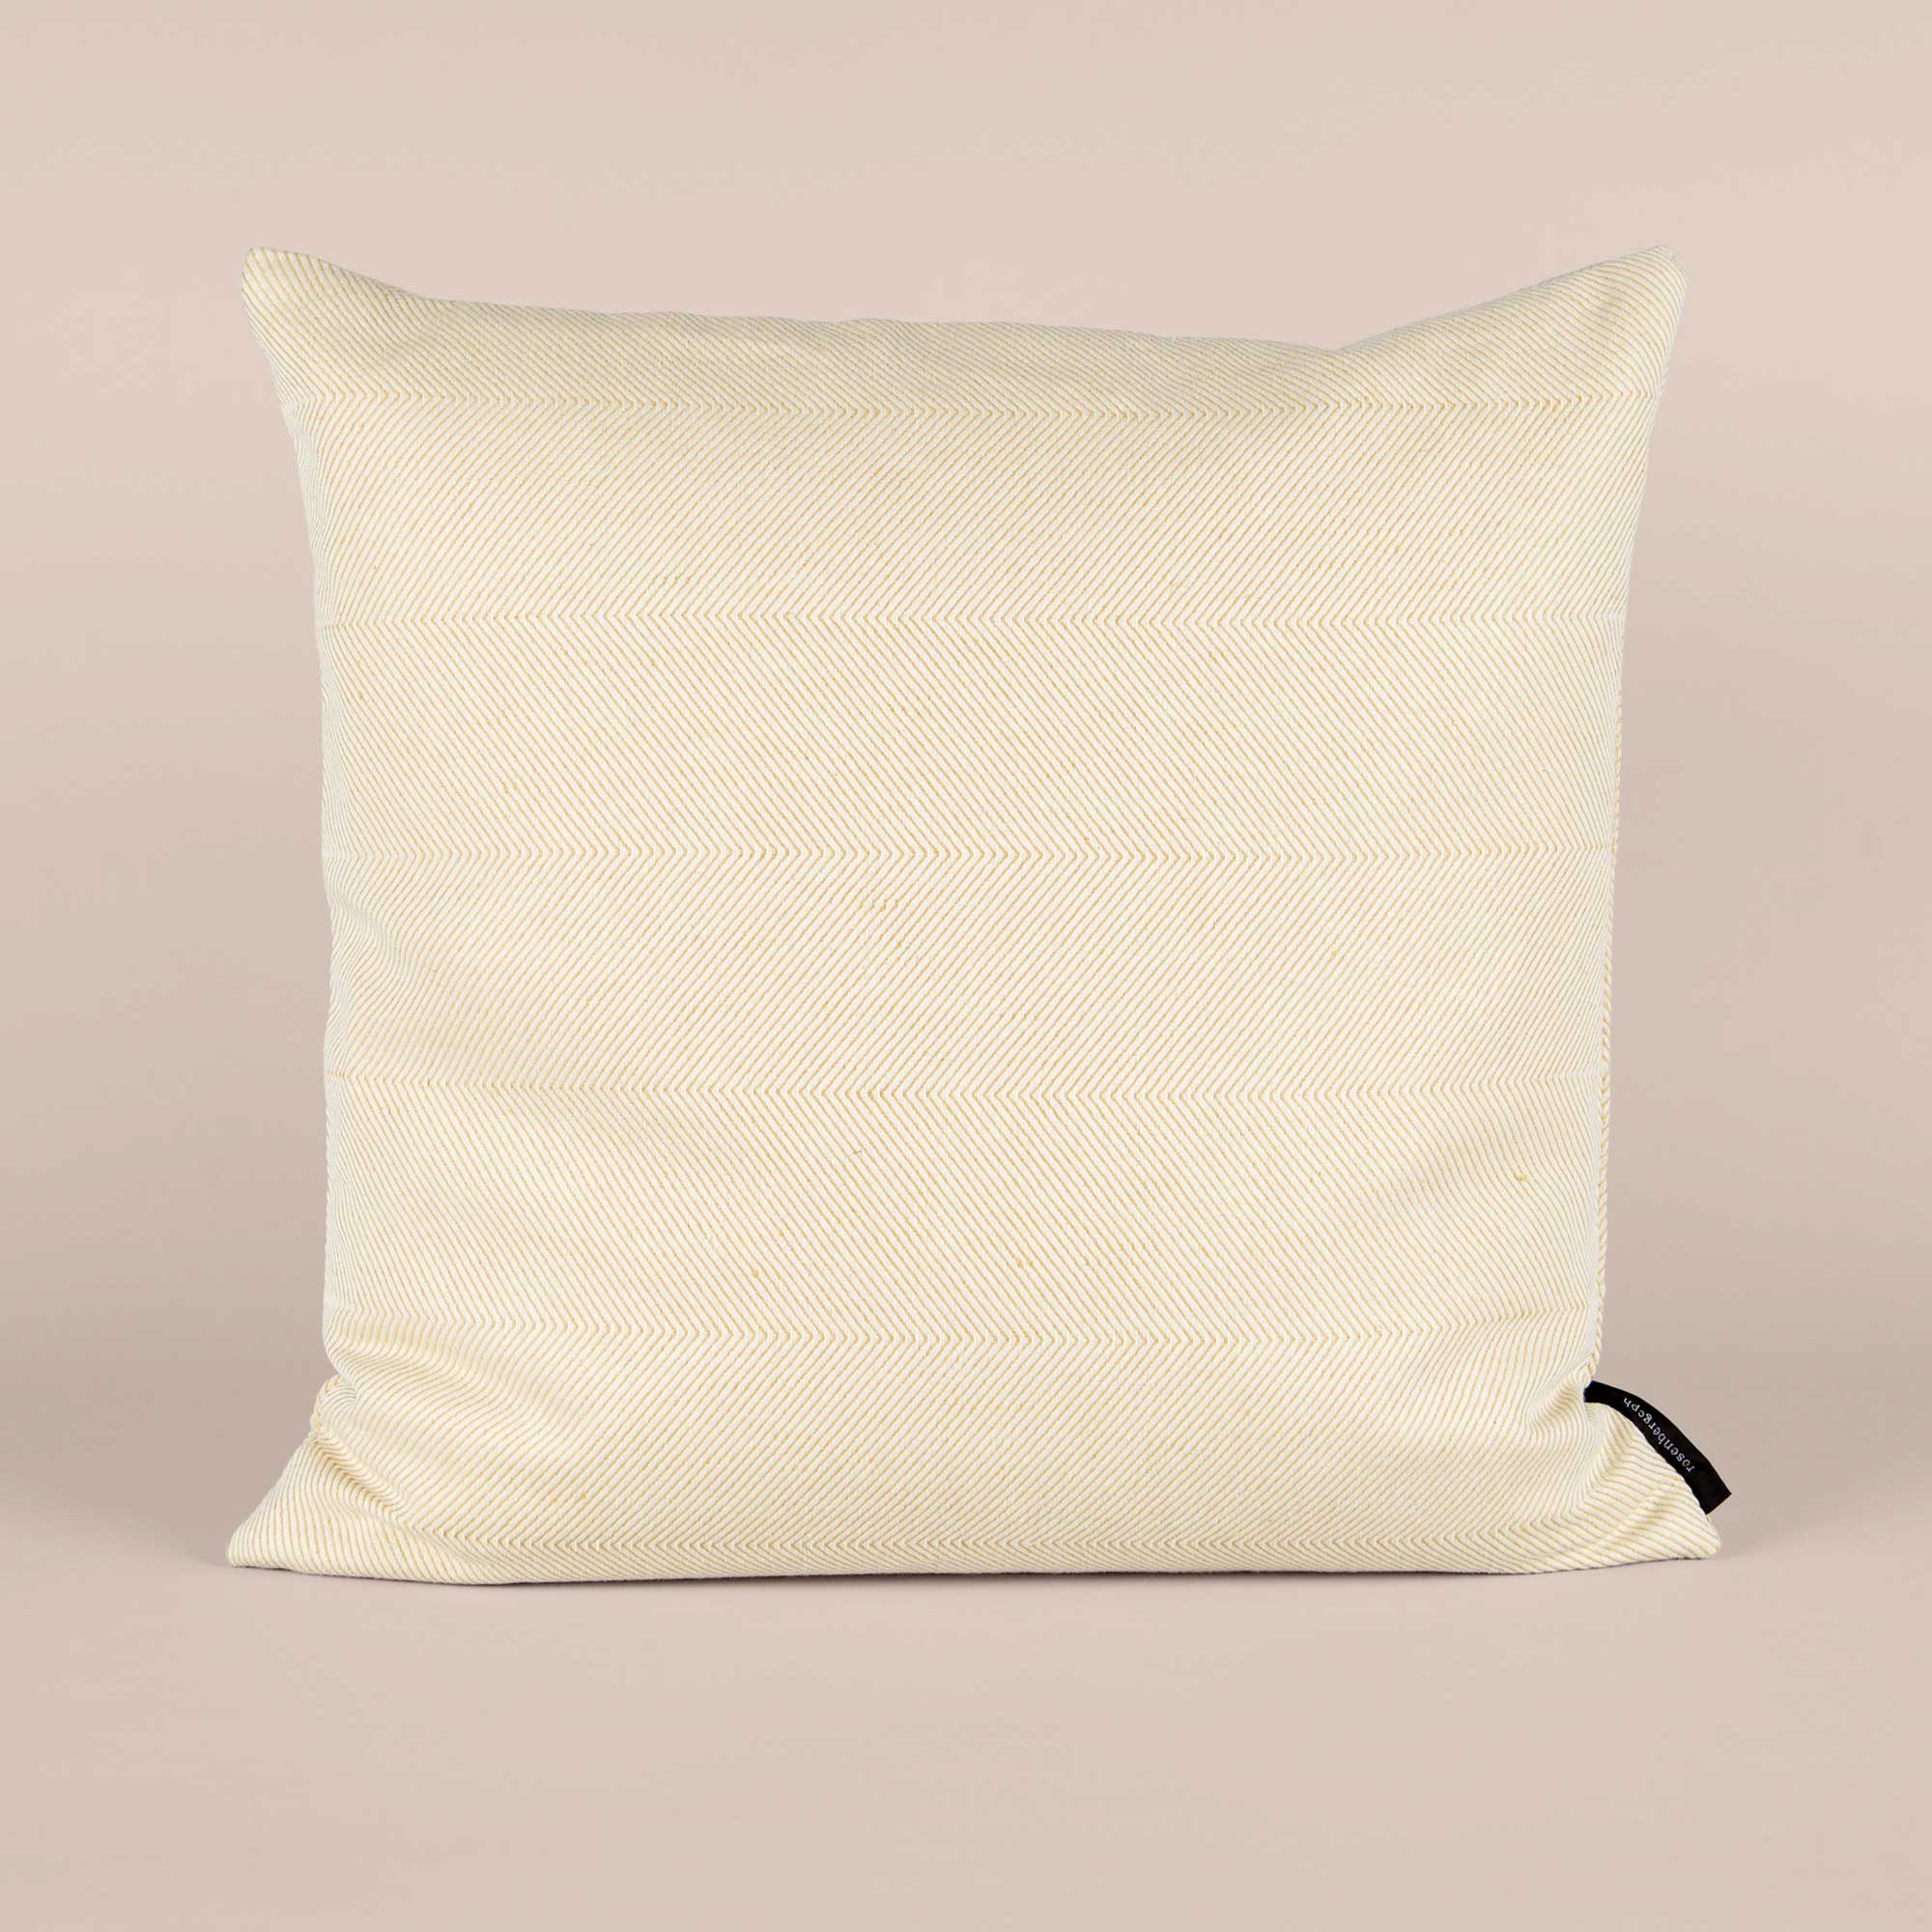 Square cushion linen/cotton light hay yellow design by Anne Rosenberg, RosenbergCph